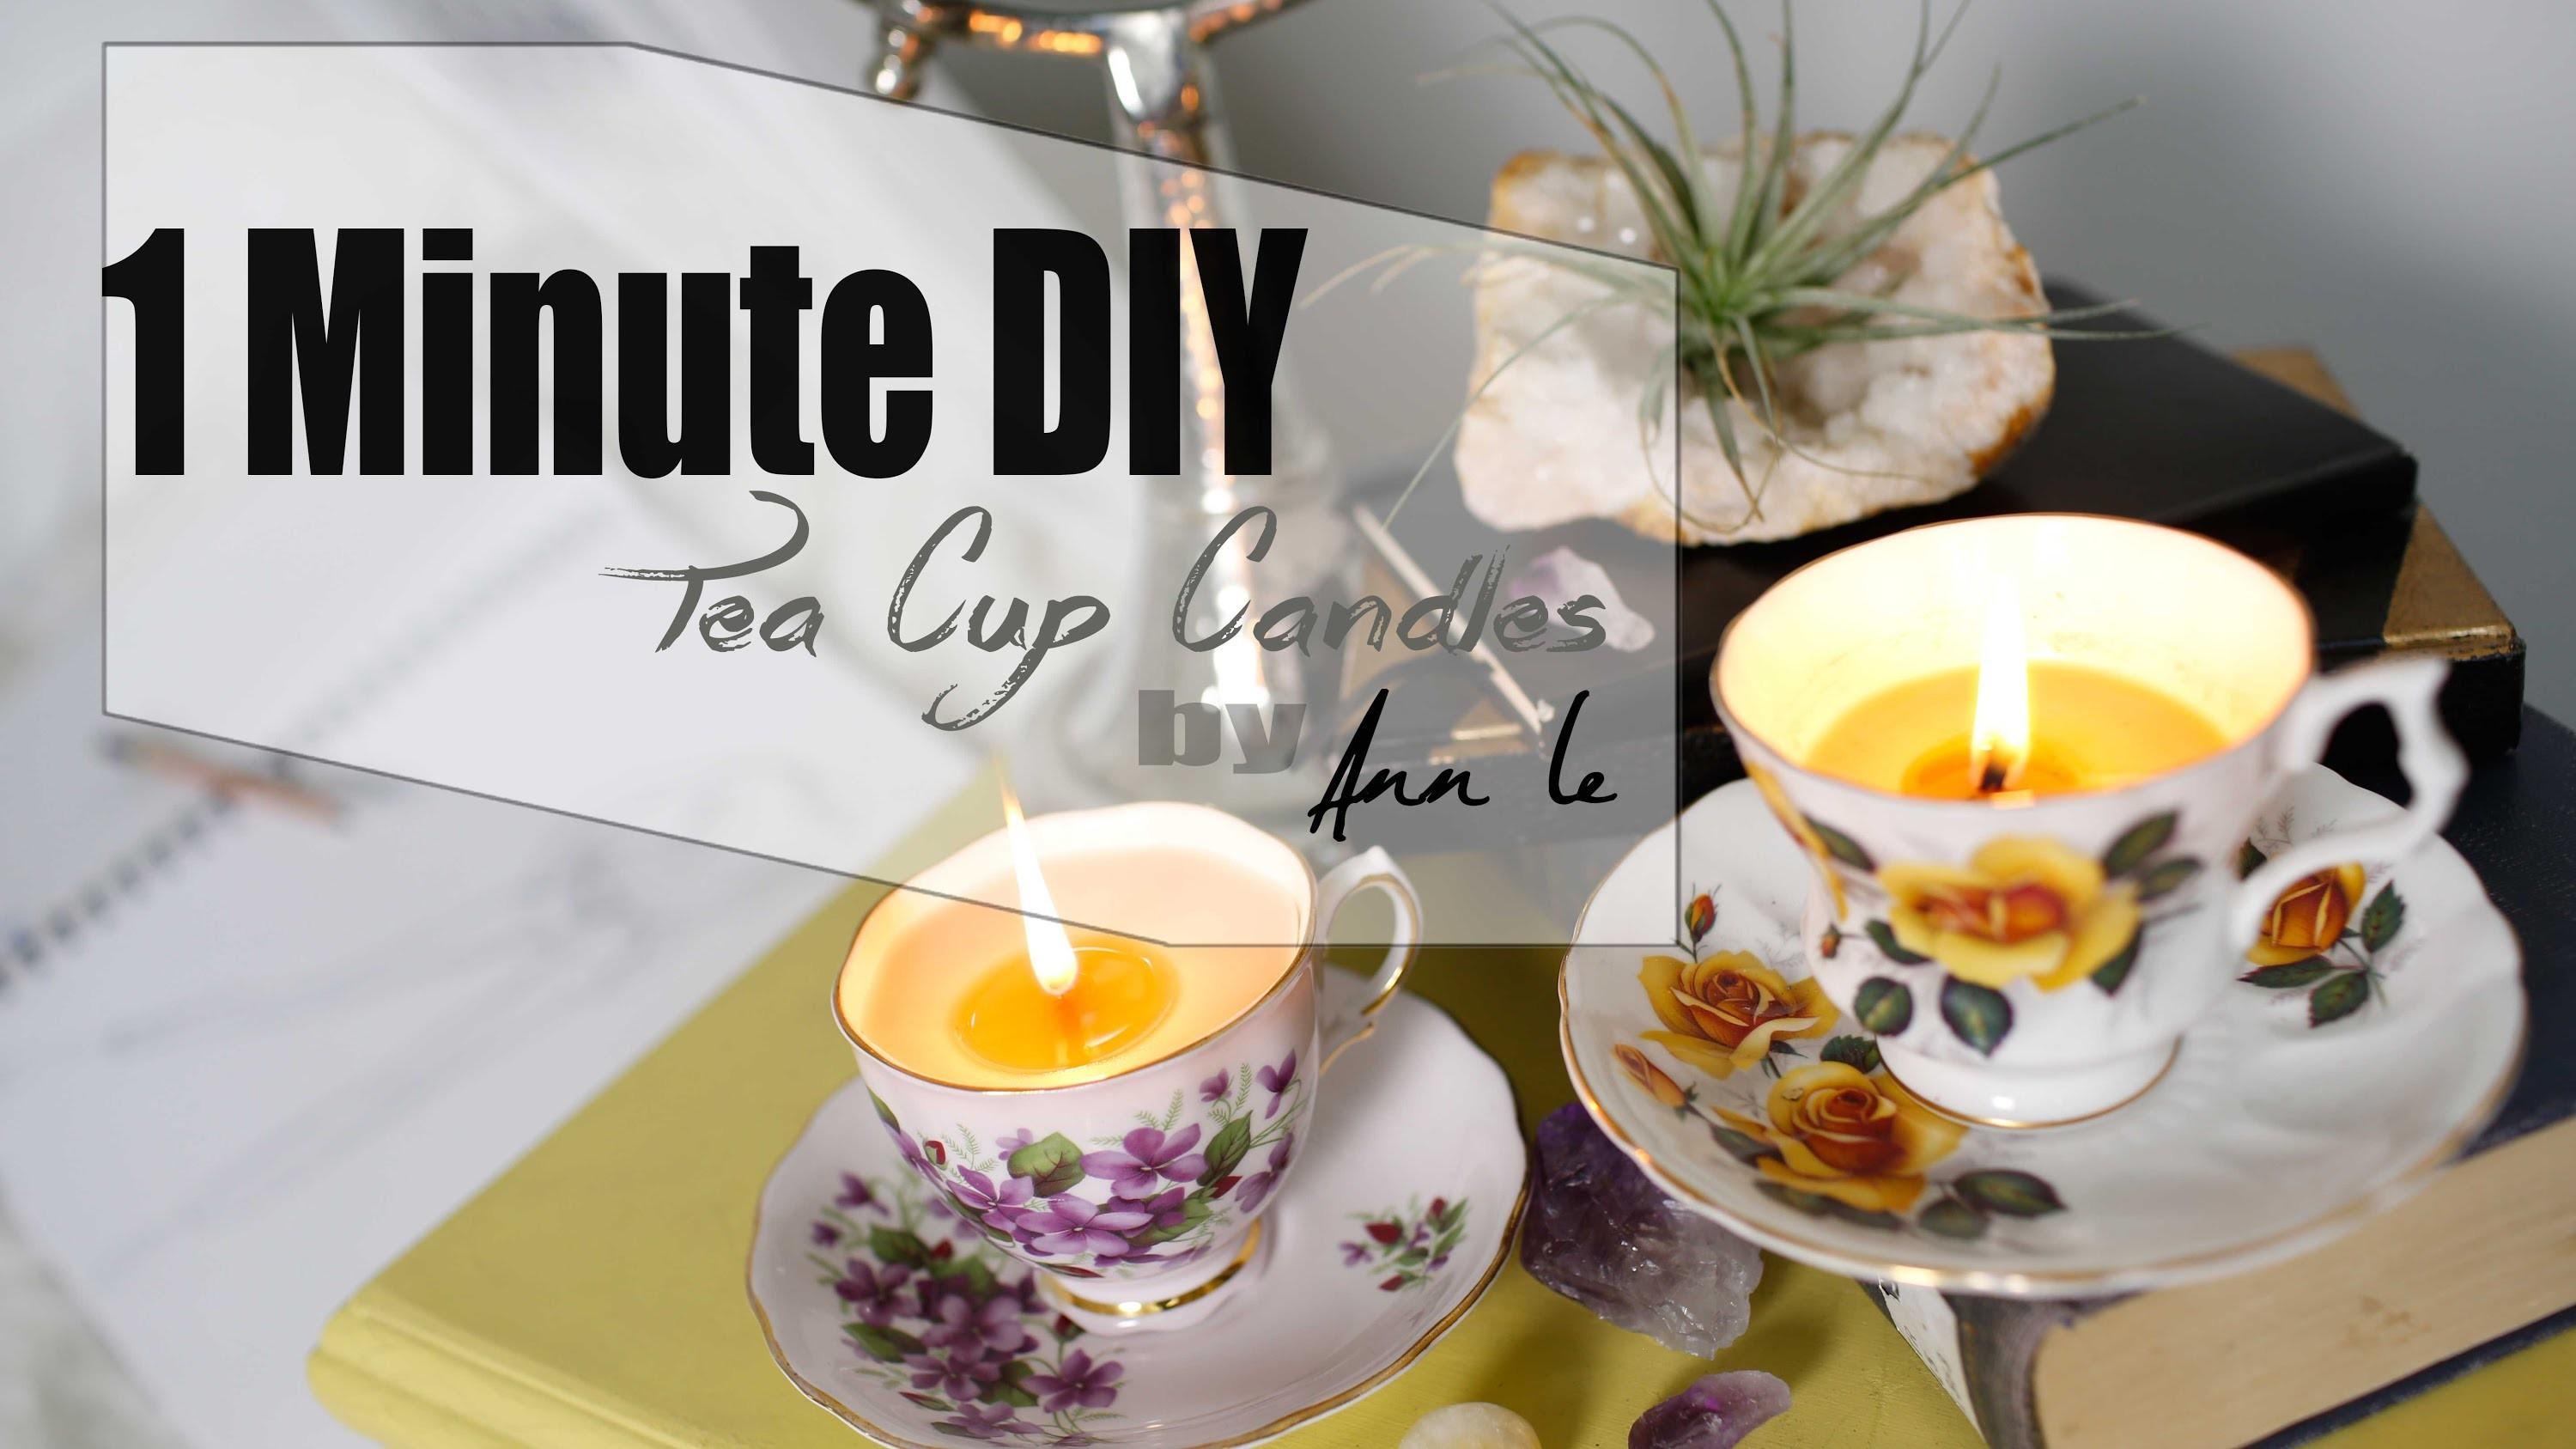 Diy Tea Cup Candles Wedding Decor Ann